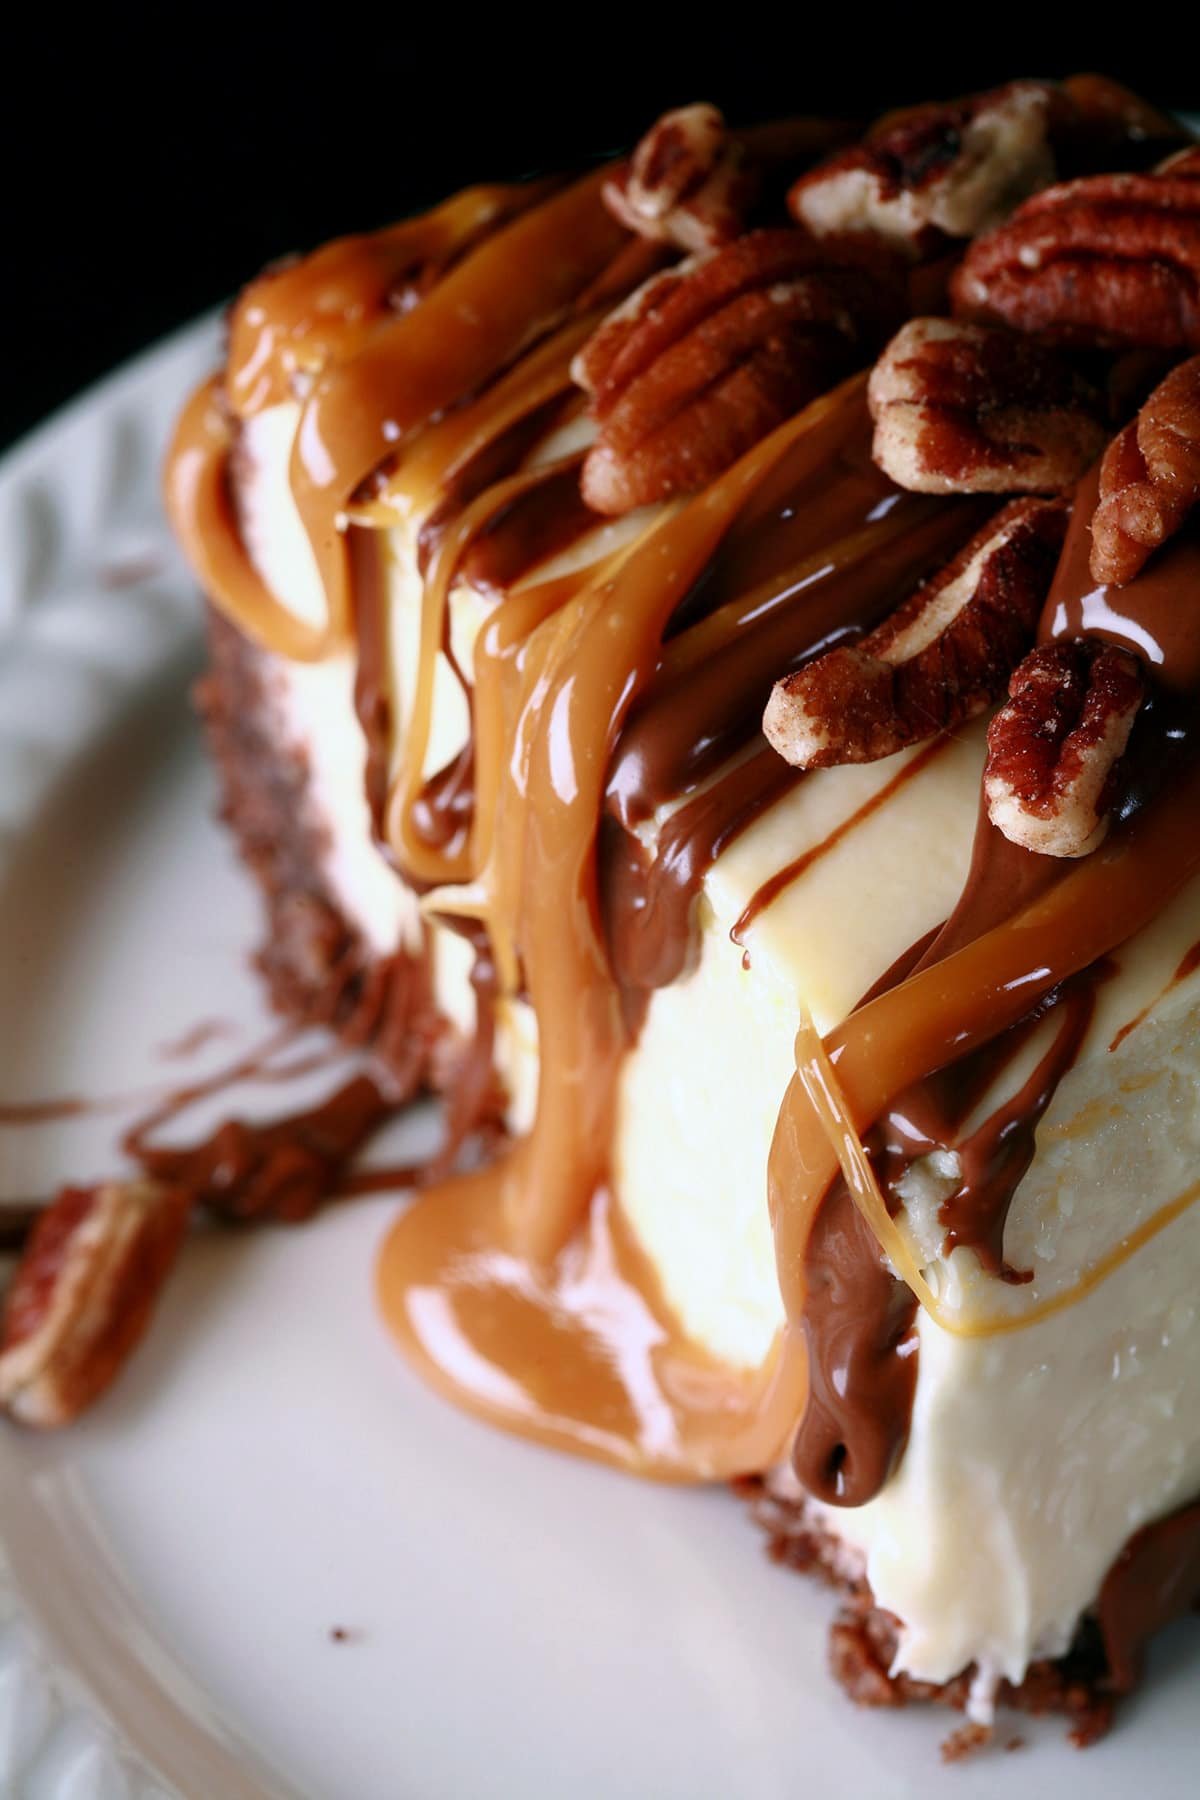 A close up view of a slice of turtle cheesecake.